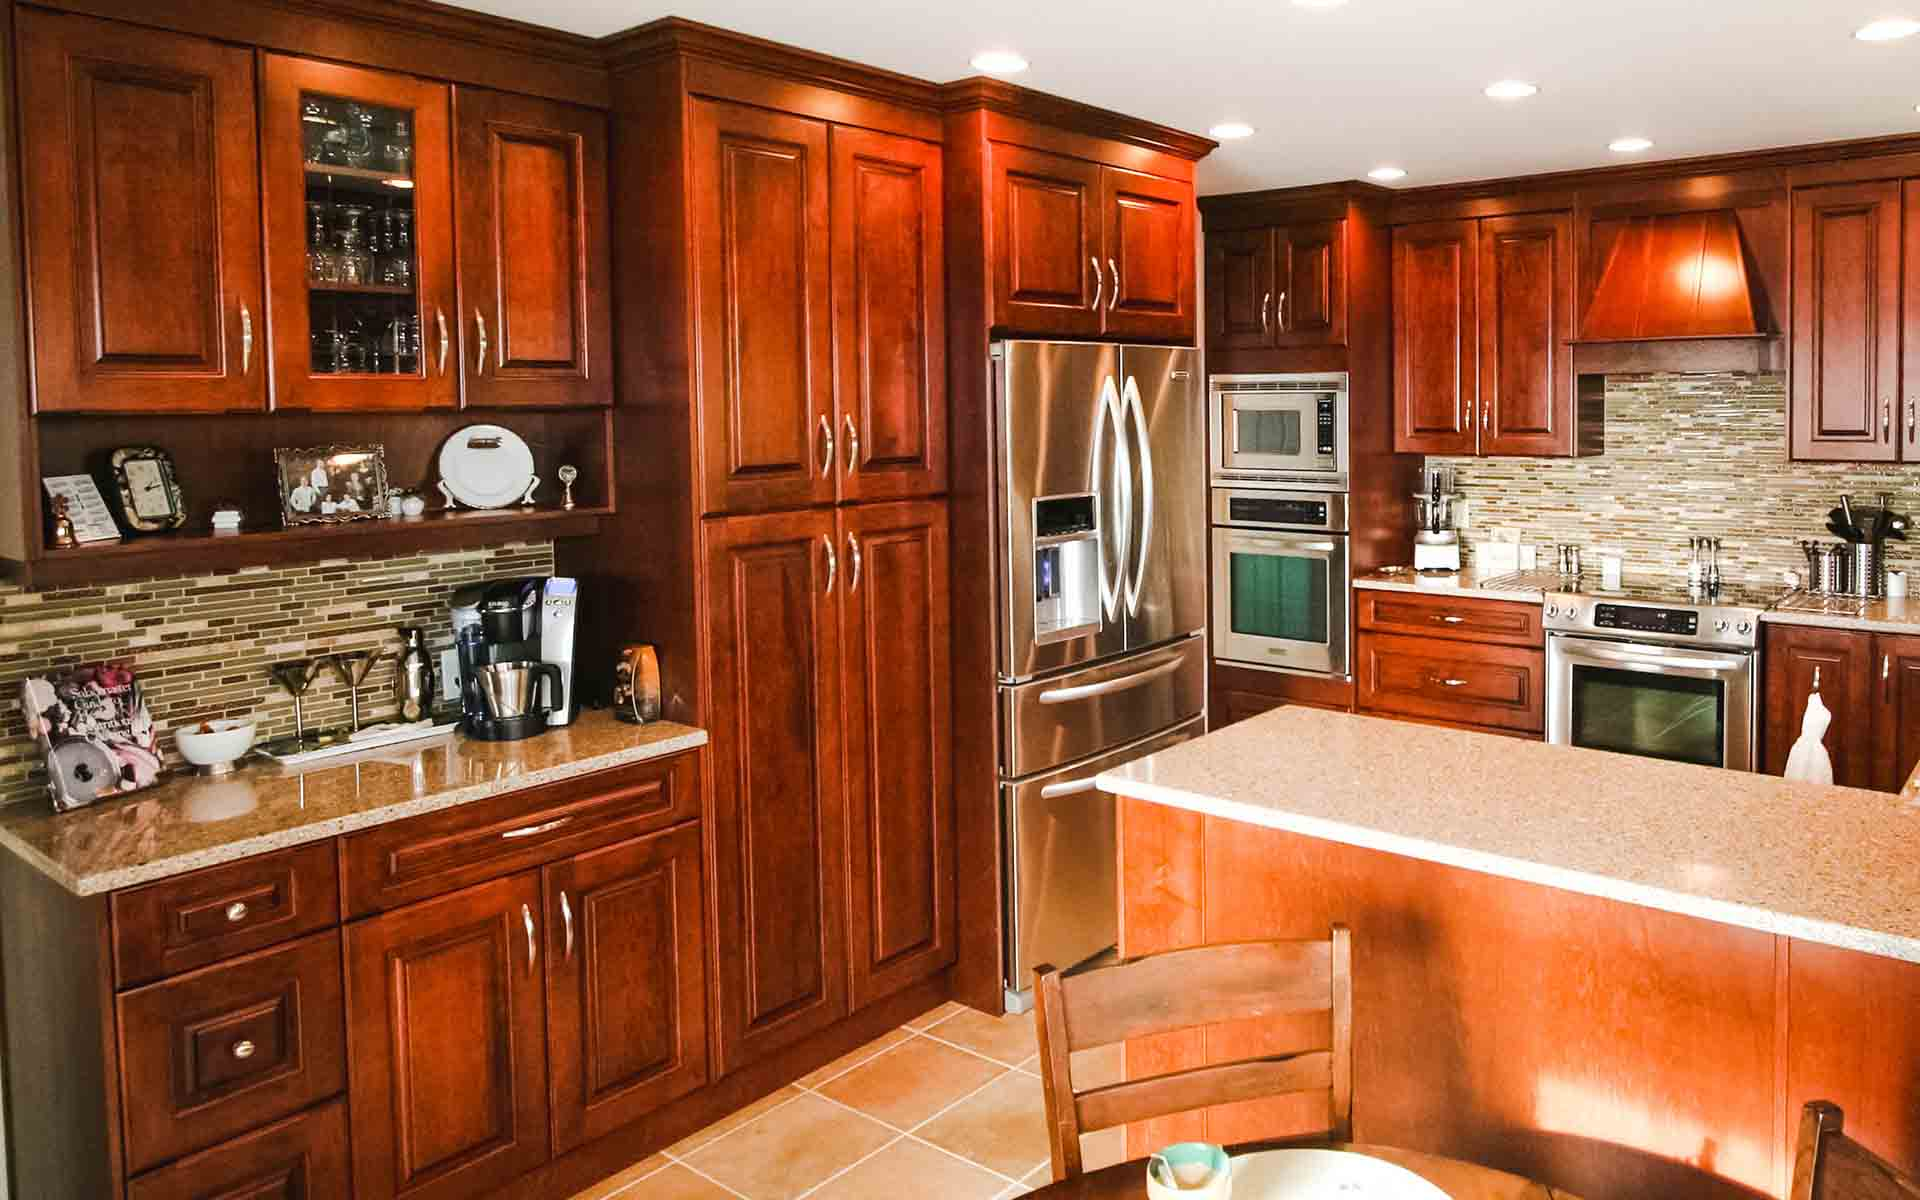 Century-cabinets-and-countertops-kitchen-cabinets-and-countertops.jpg